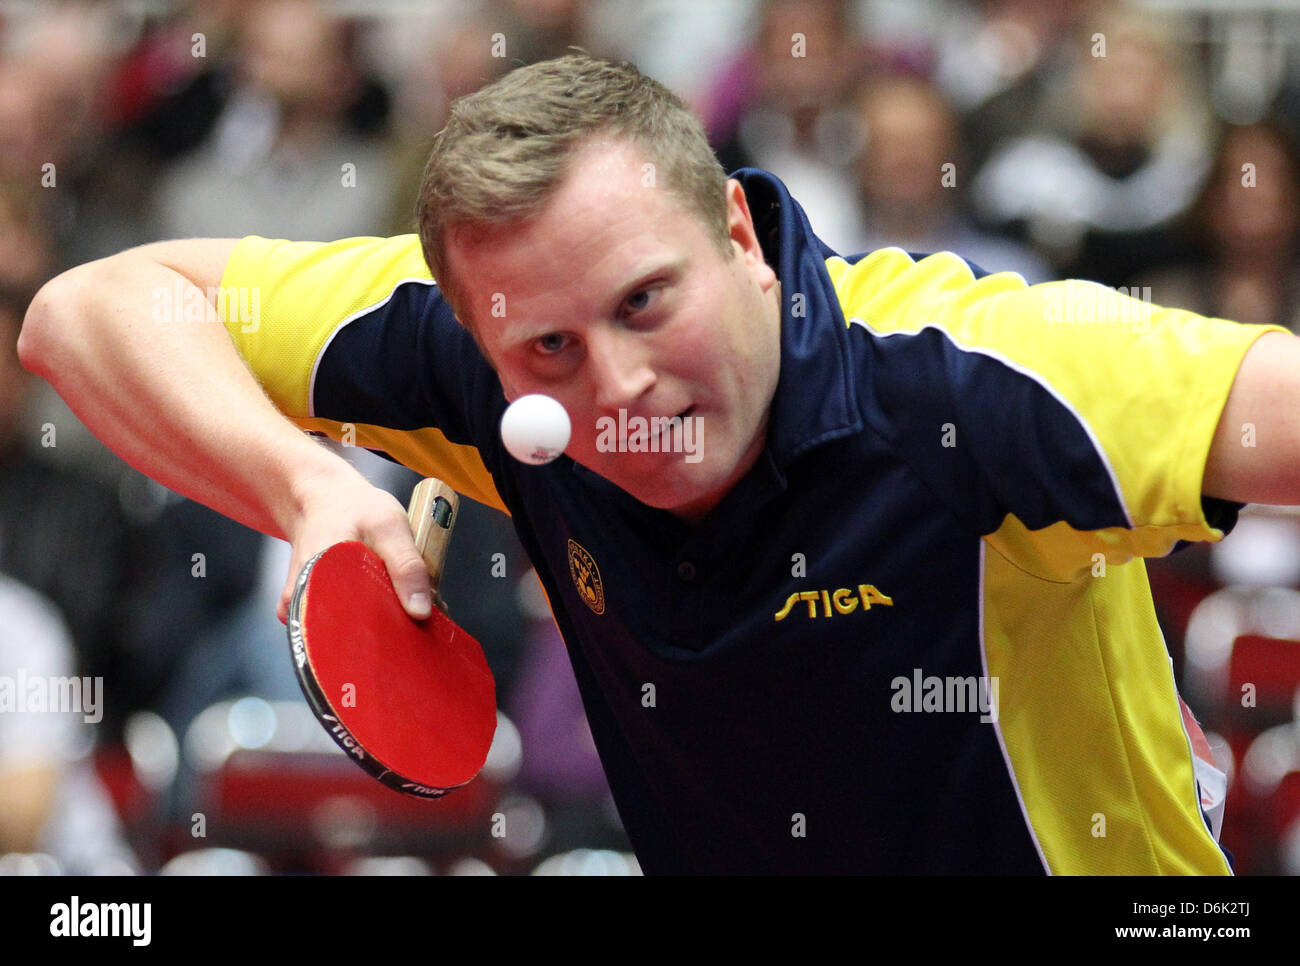 Sweden's Jens Lundqvist celebrates his during the men's quarterfinal match against Germany's Boll at - Stock Image